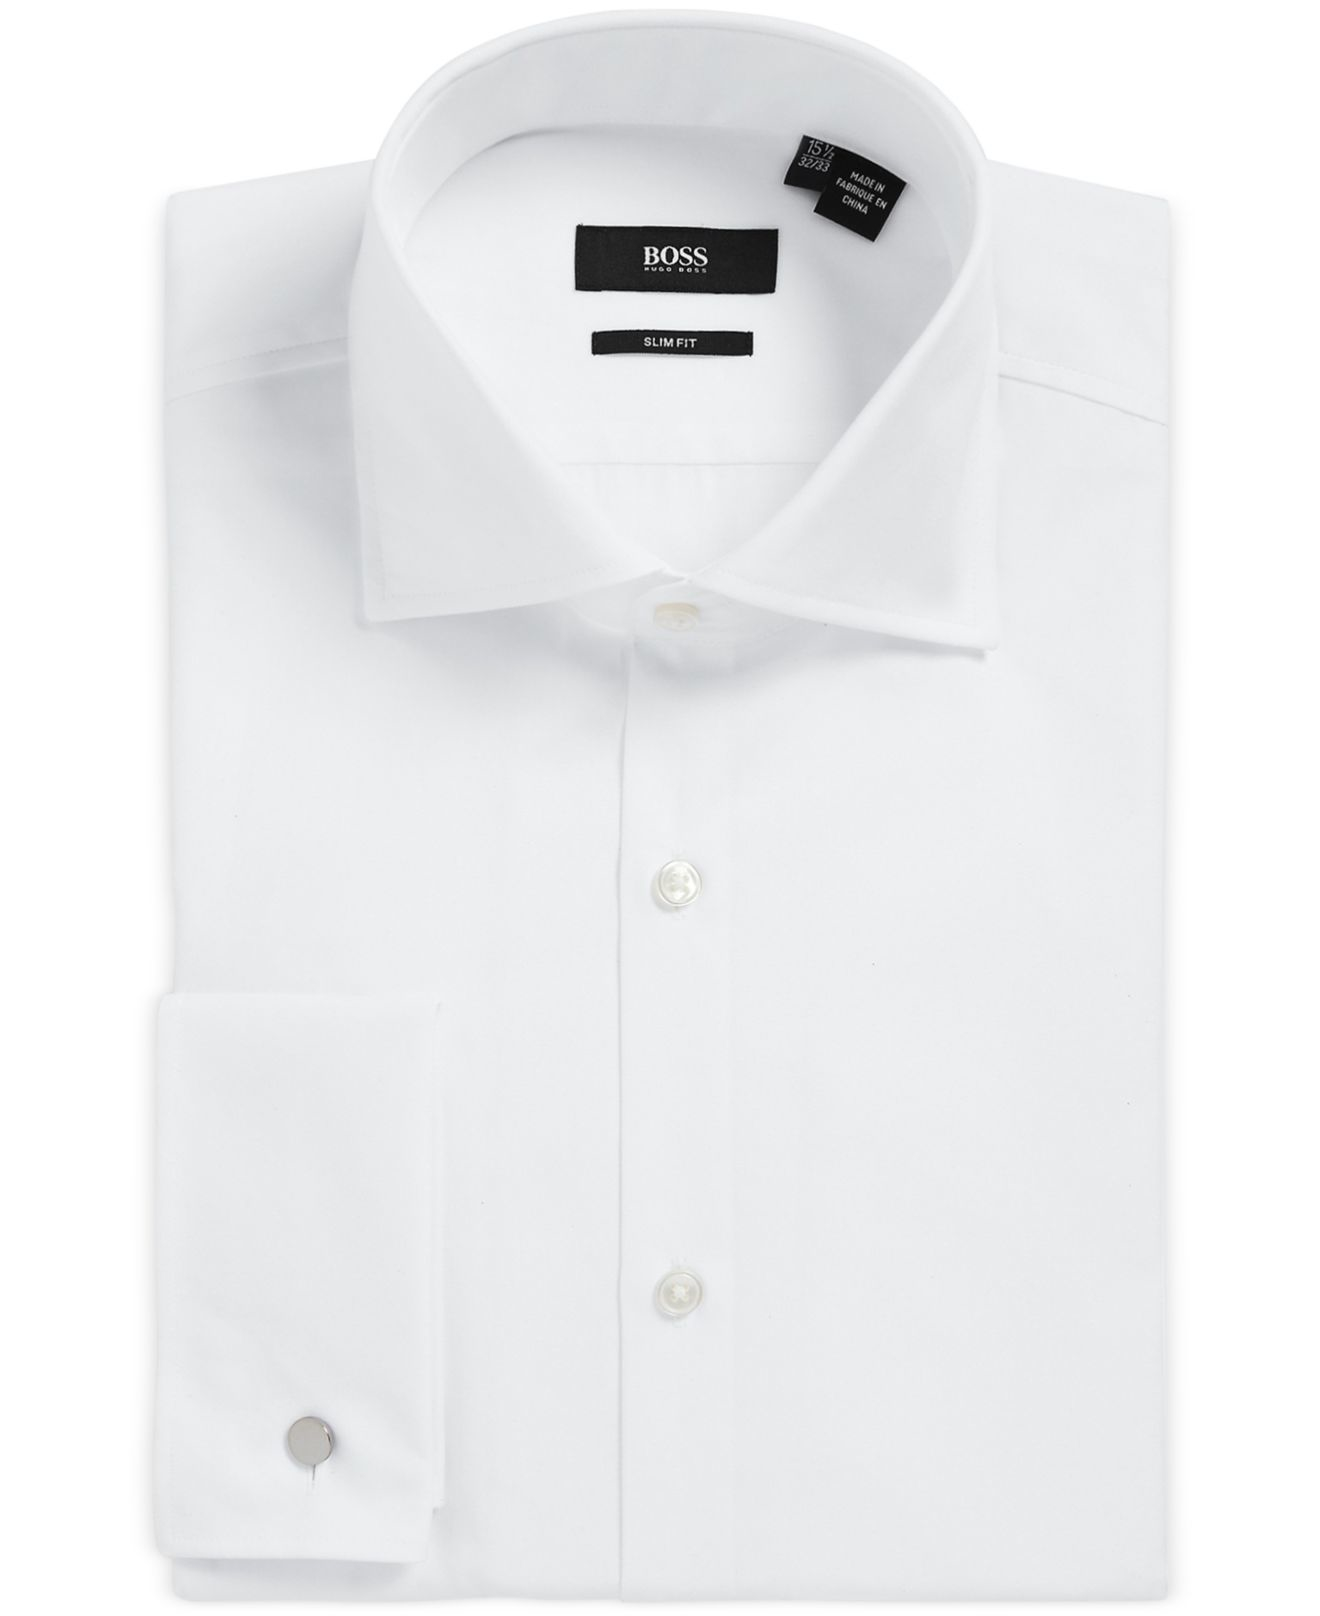 Lyst boss boss slim fit french cuff dress shirt in white White french cuff shirt slim fit